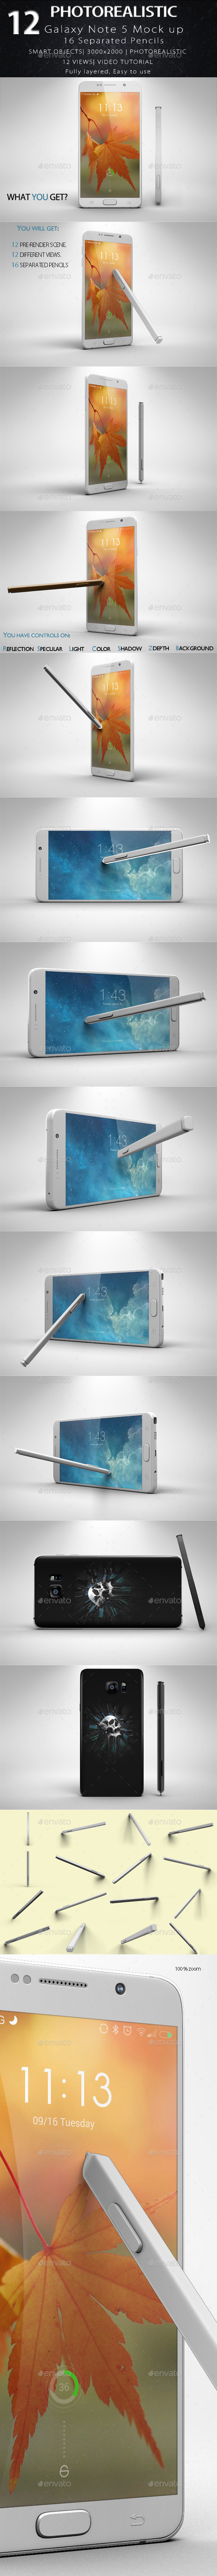 Galaxy Note 5 Mock Up - Mobile Displays